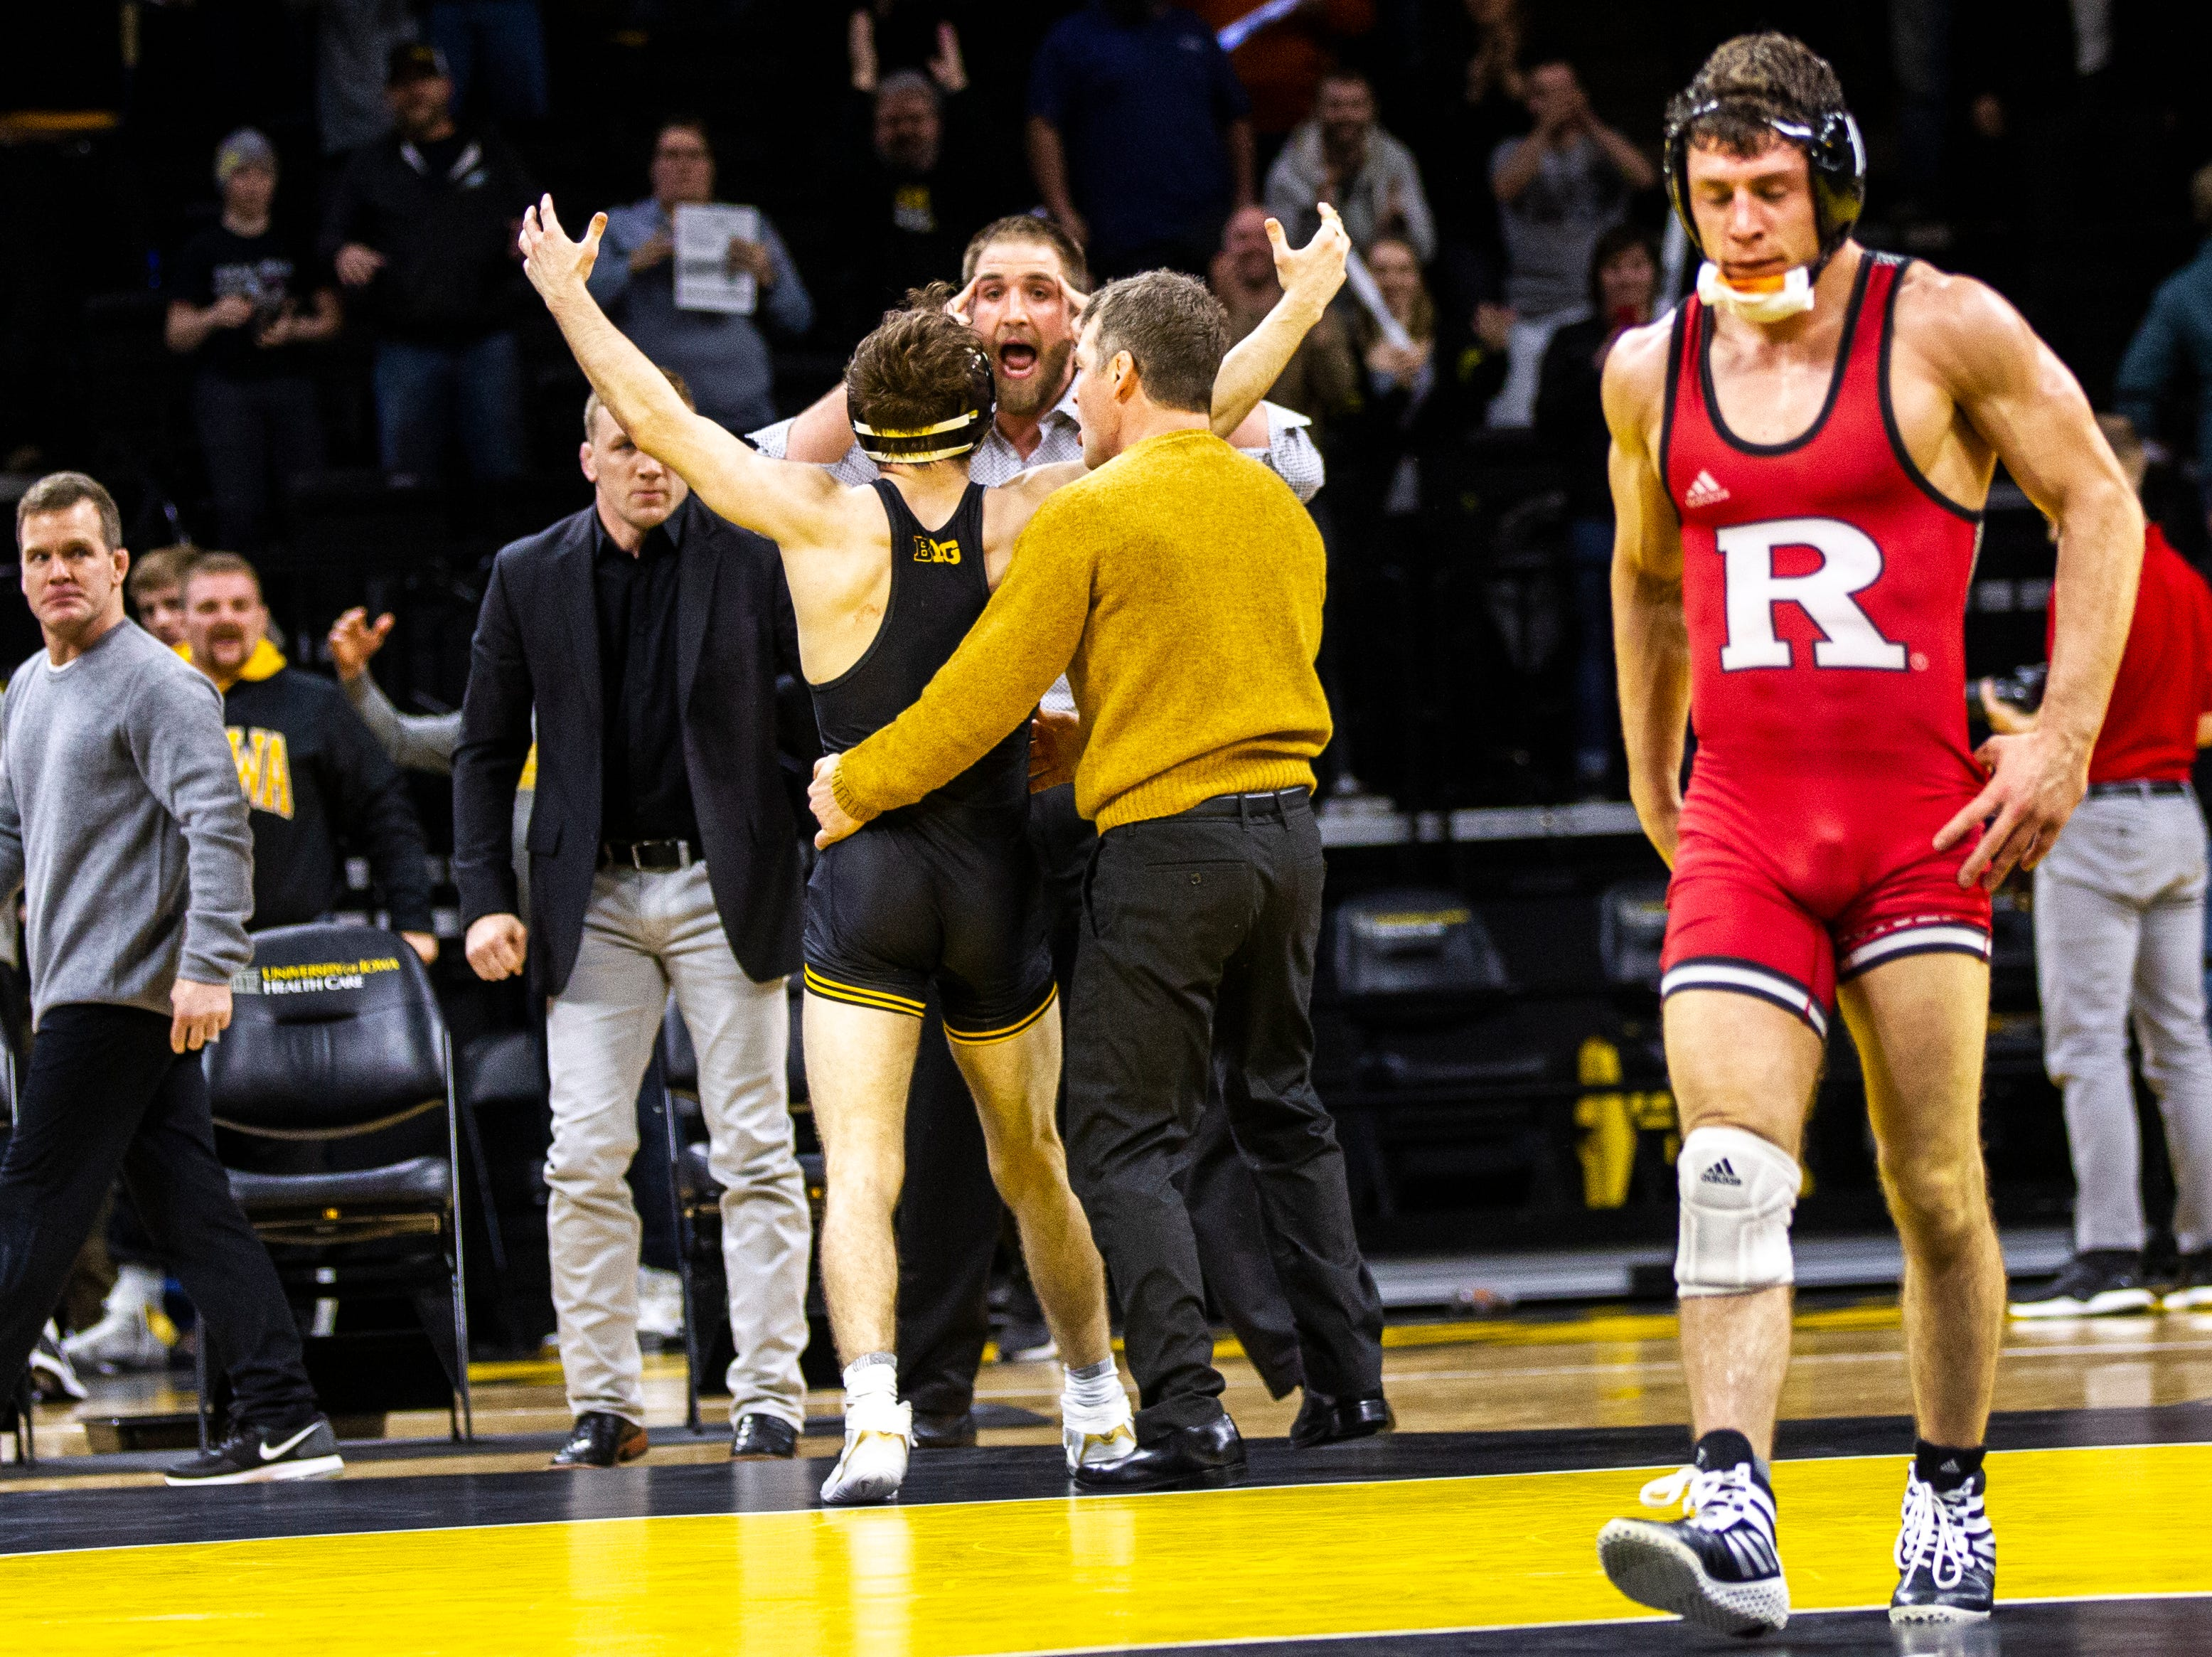 Iowa's Austin DeSanto, left, celebrates after scoring a decision over Rutgers' Nick Suriano at 133 during a NCAA Big Ten Conference wrestling dual on Friday, Jan. 18, 2019, at Carver-Hawkeye Arena in Iowa City, Iowa.